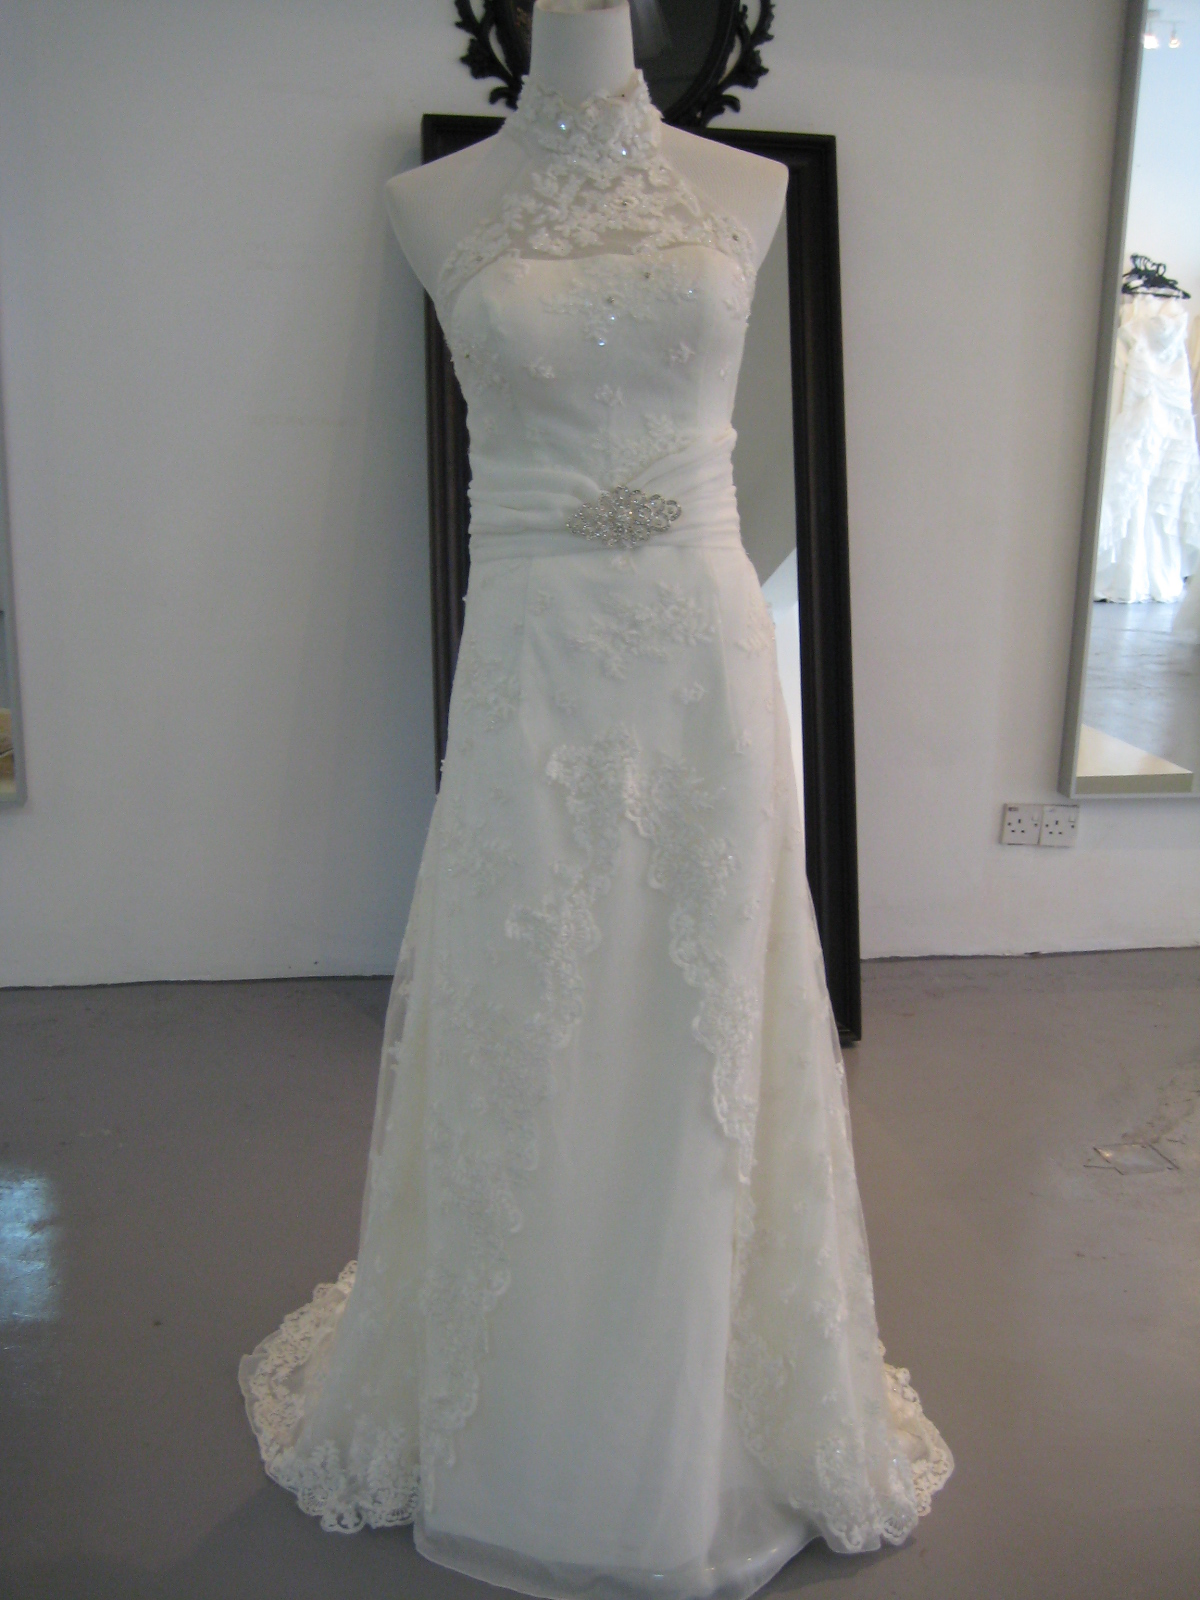 My bridal gown ivoire range mandarin collar lace gown for Wedding dress with collar